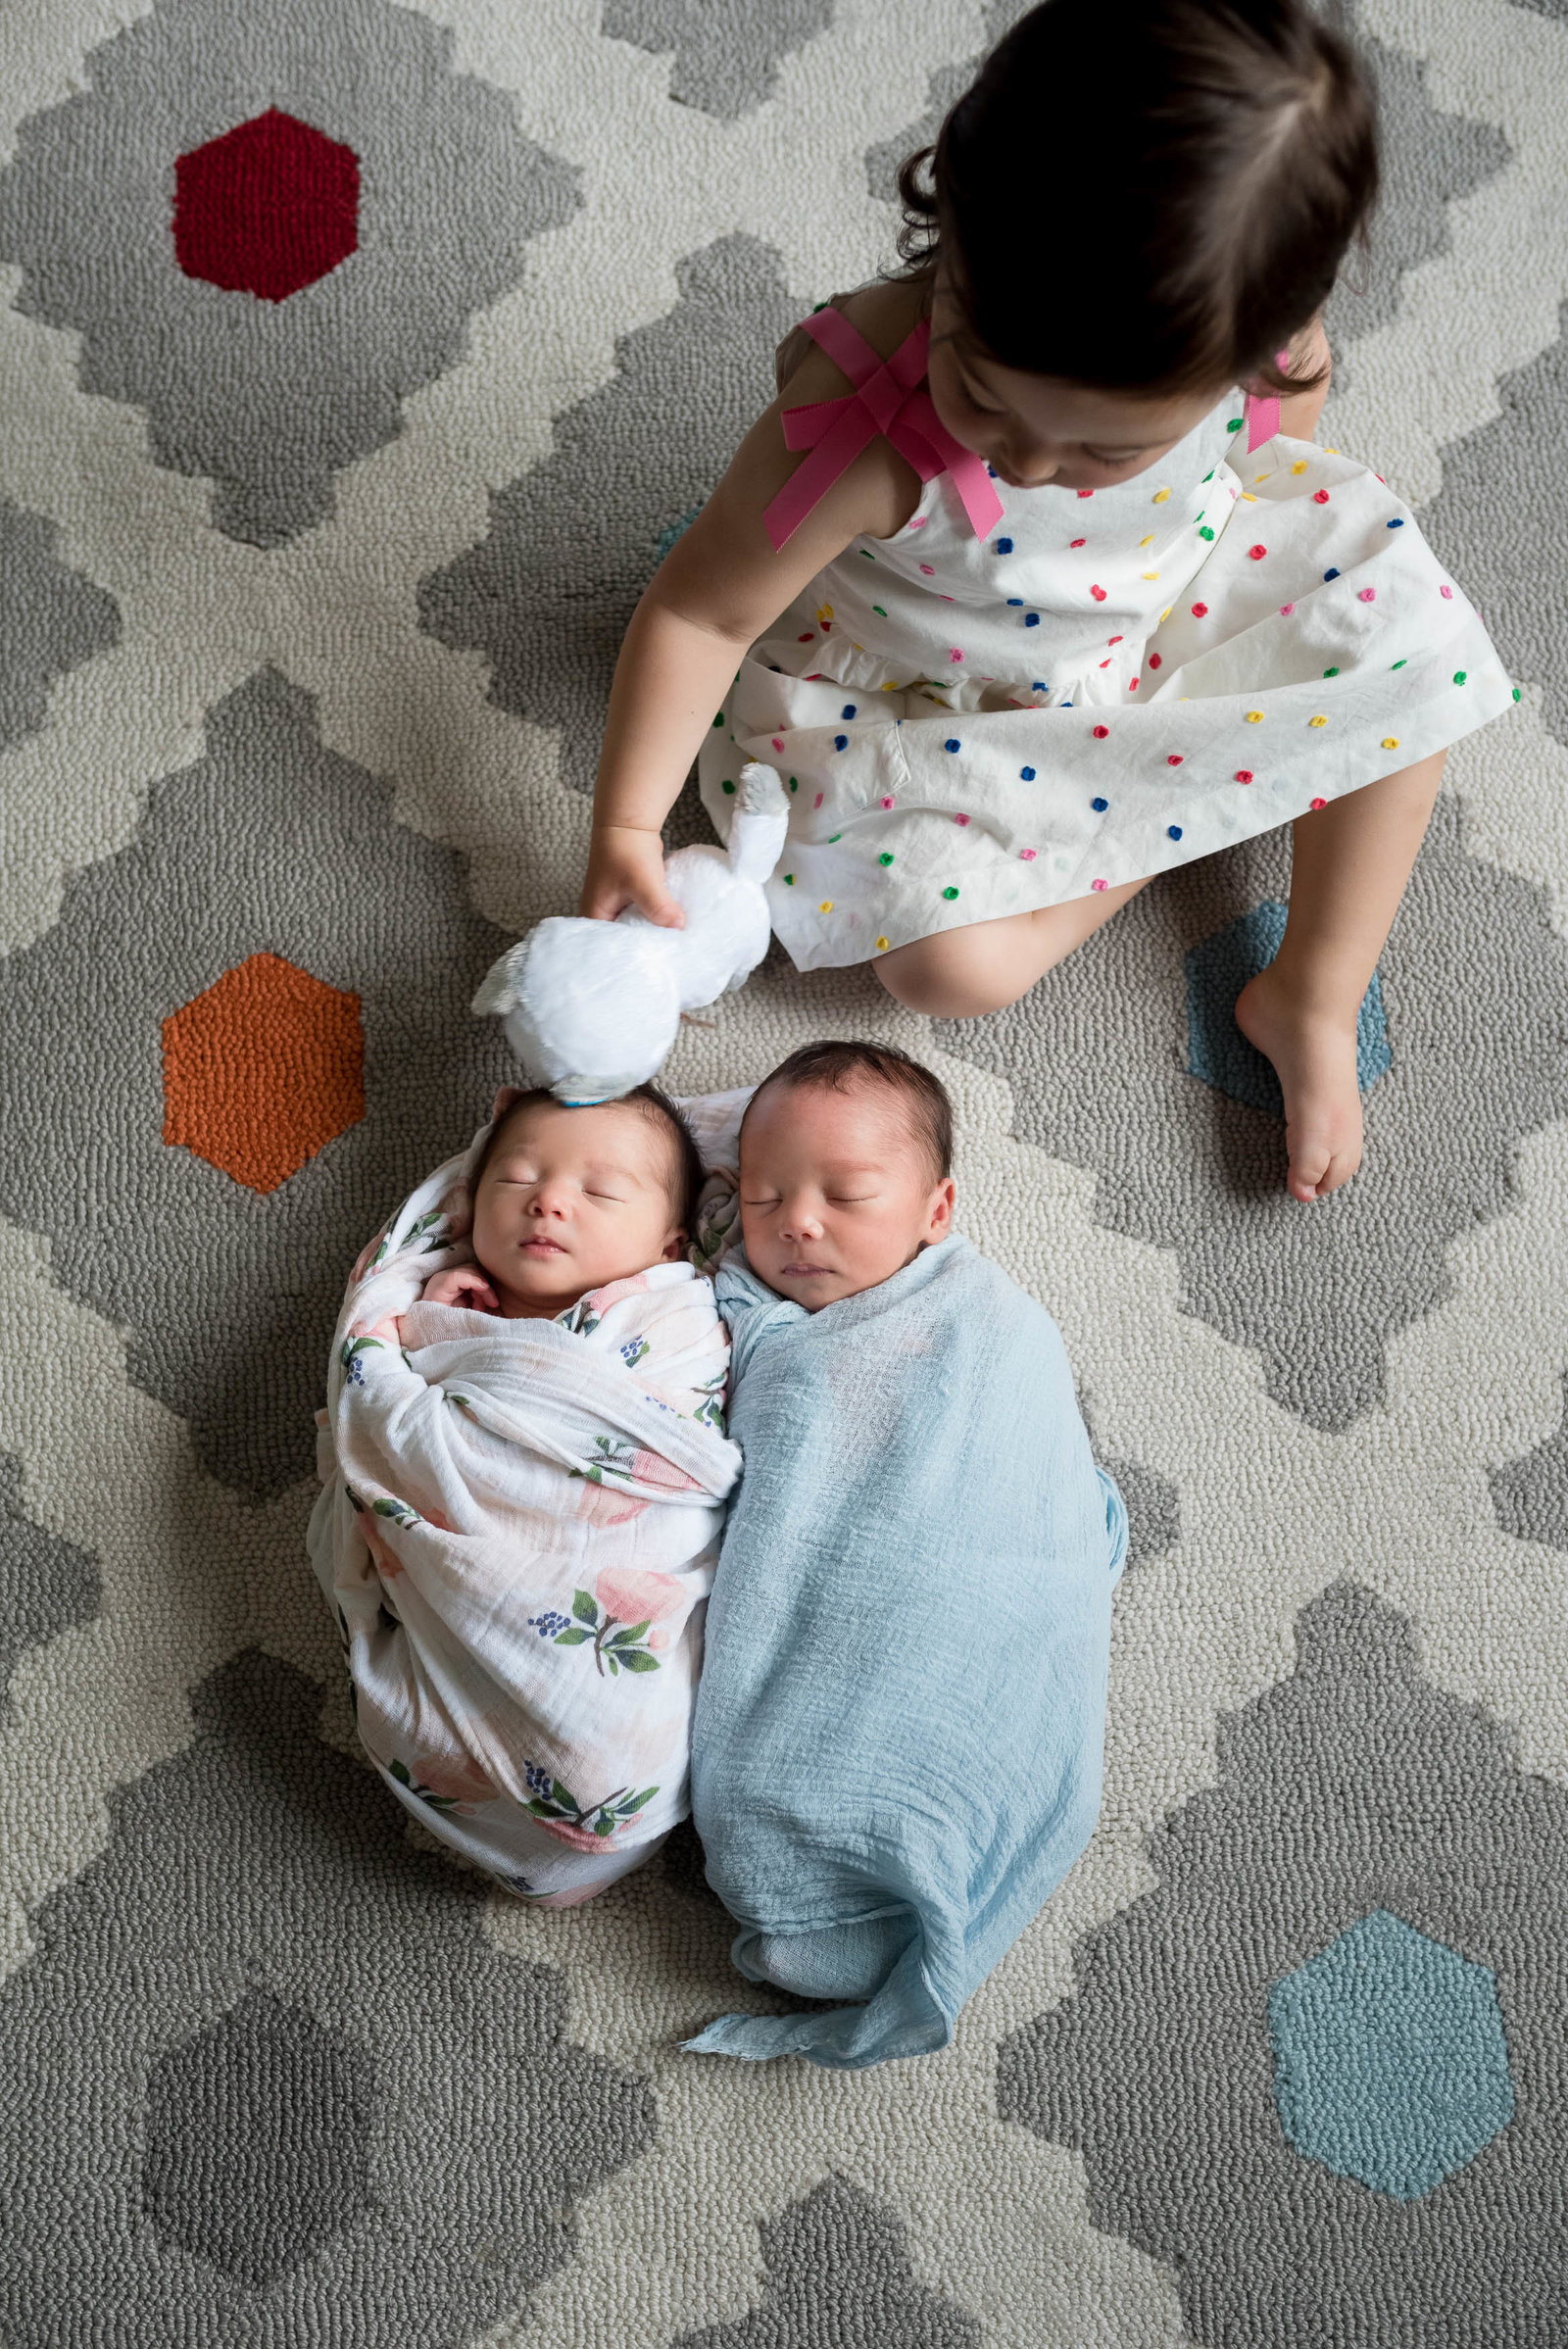 Boston-Newborn-Photographer-Lifestyle-Documentary-Home-Styled-Session-366